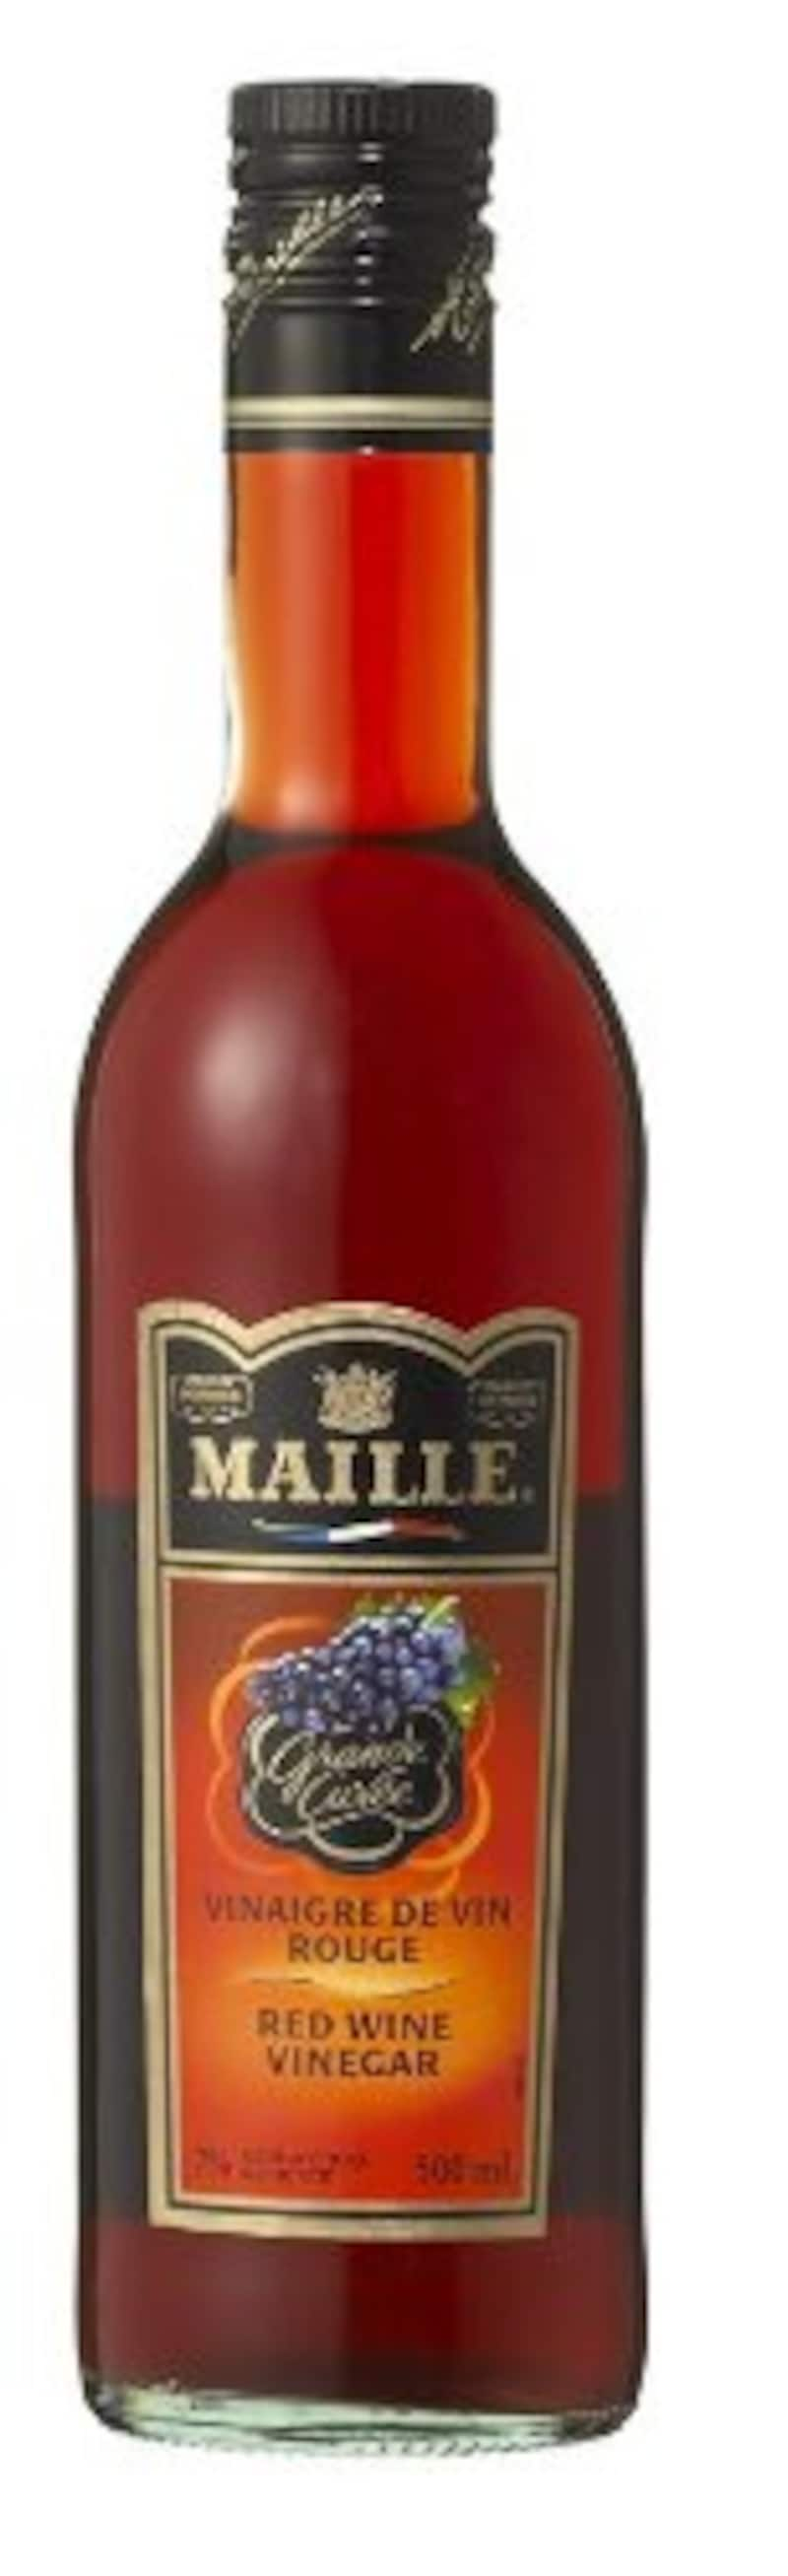 MAILLE(マイユ),赤ワインビネガー